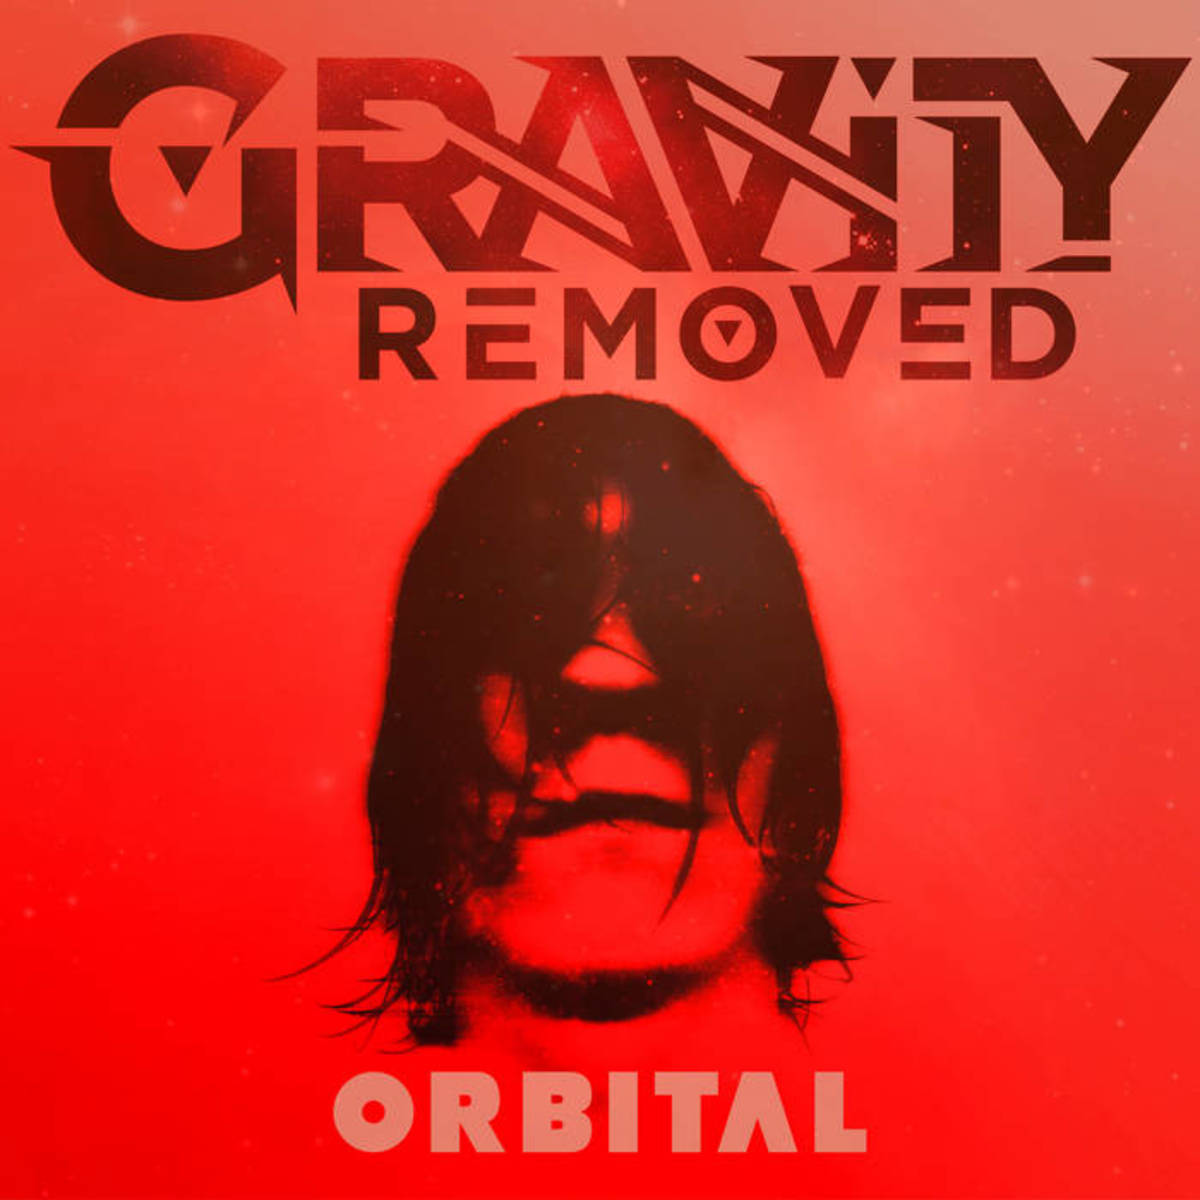 synth-album-review-orbital-by-gravity-removed